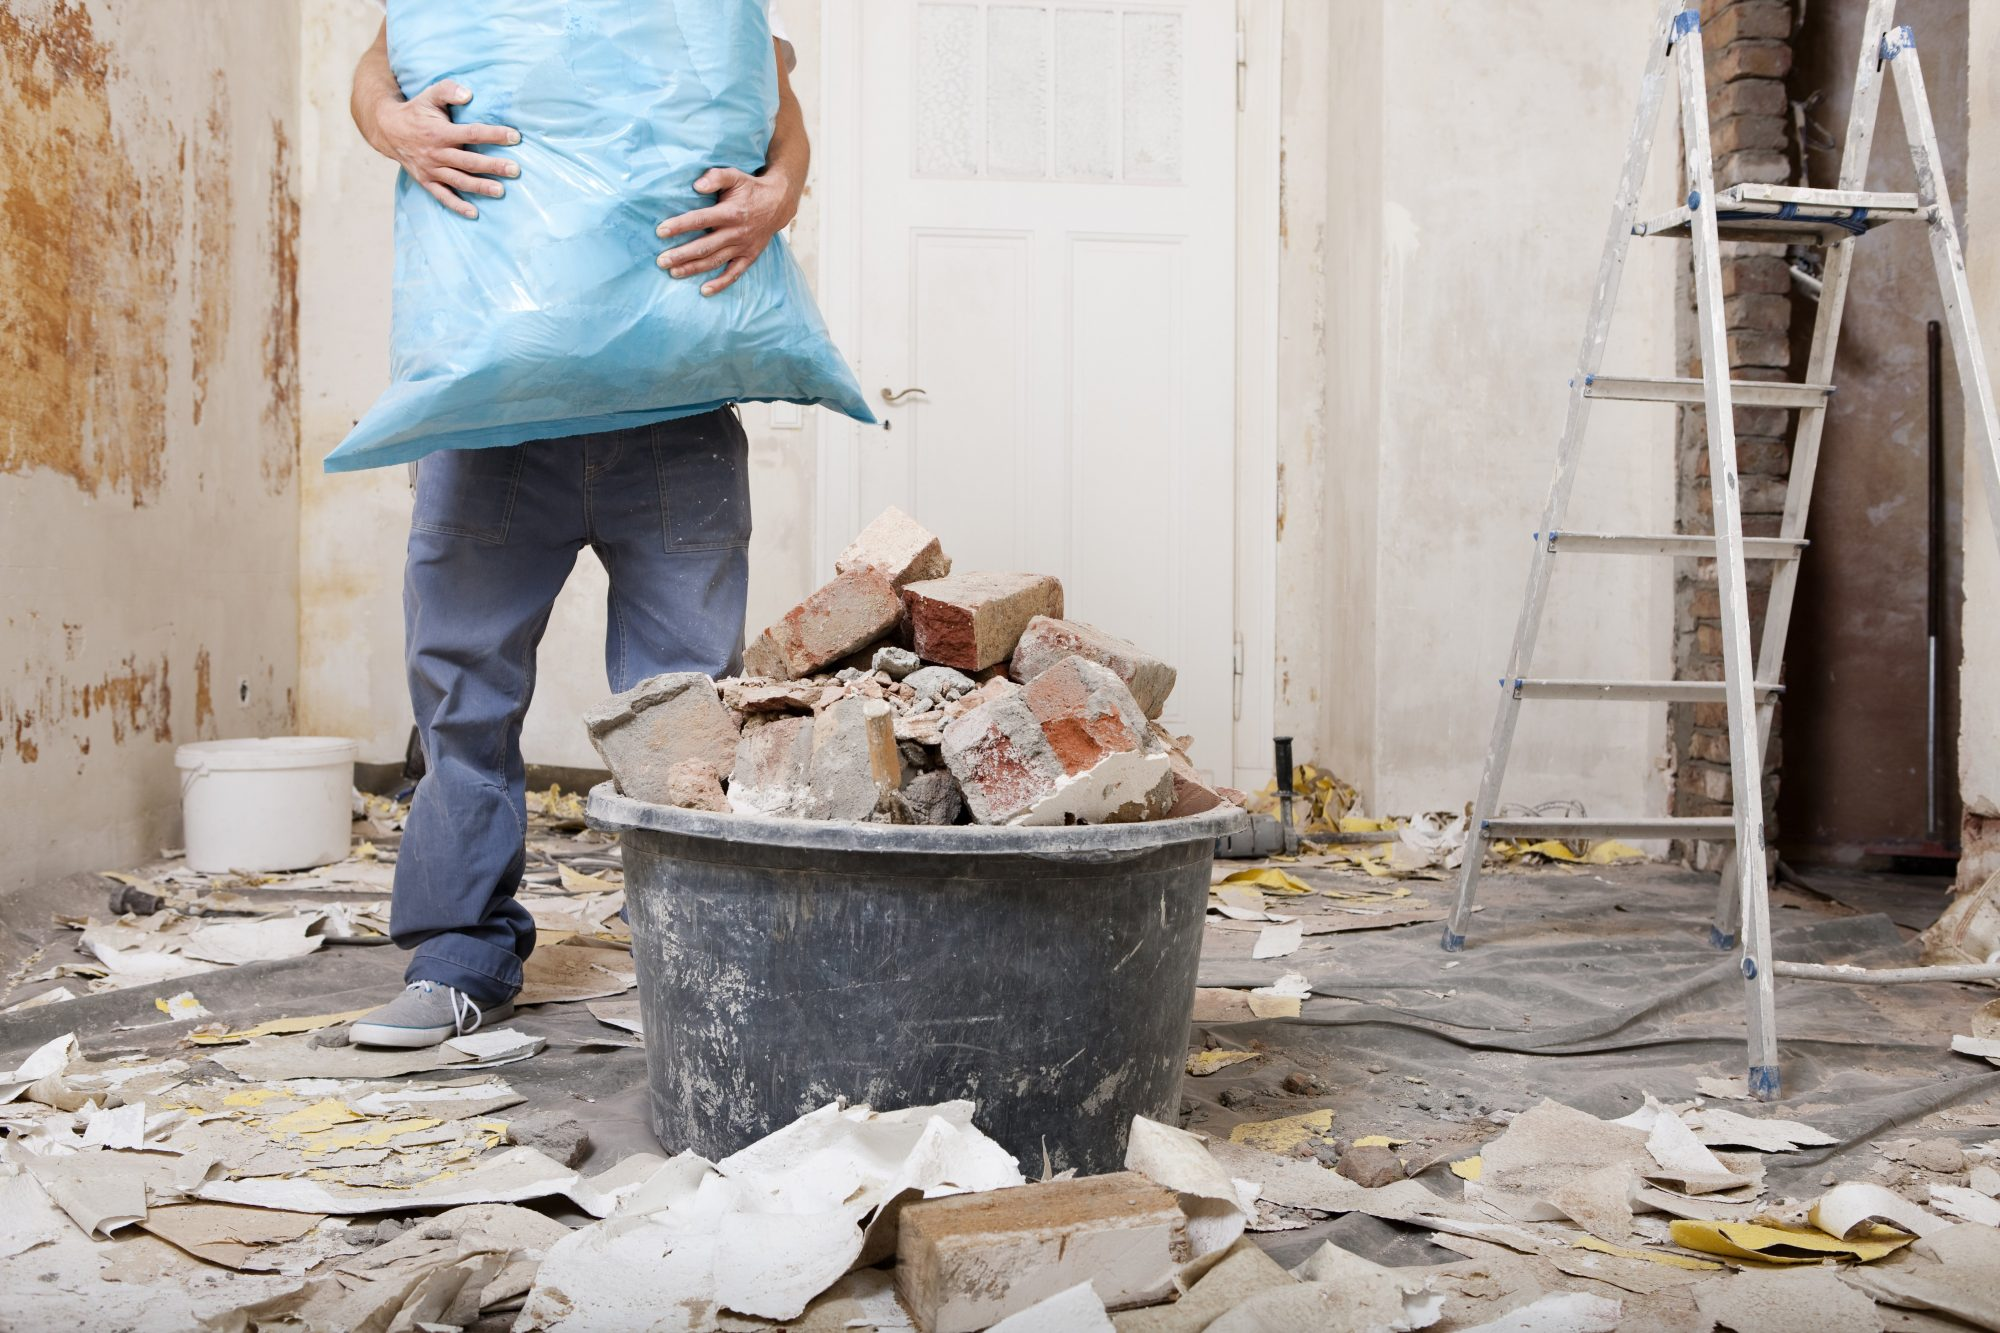 Don't Fall for These Home Repair Ripoffs